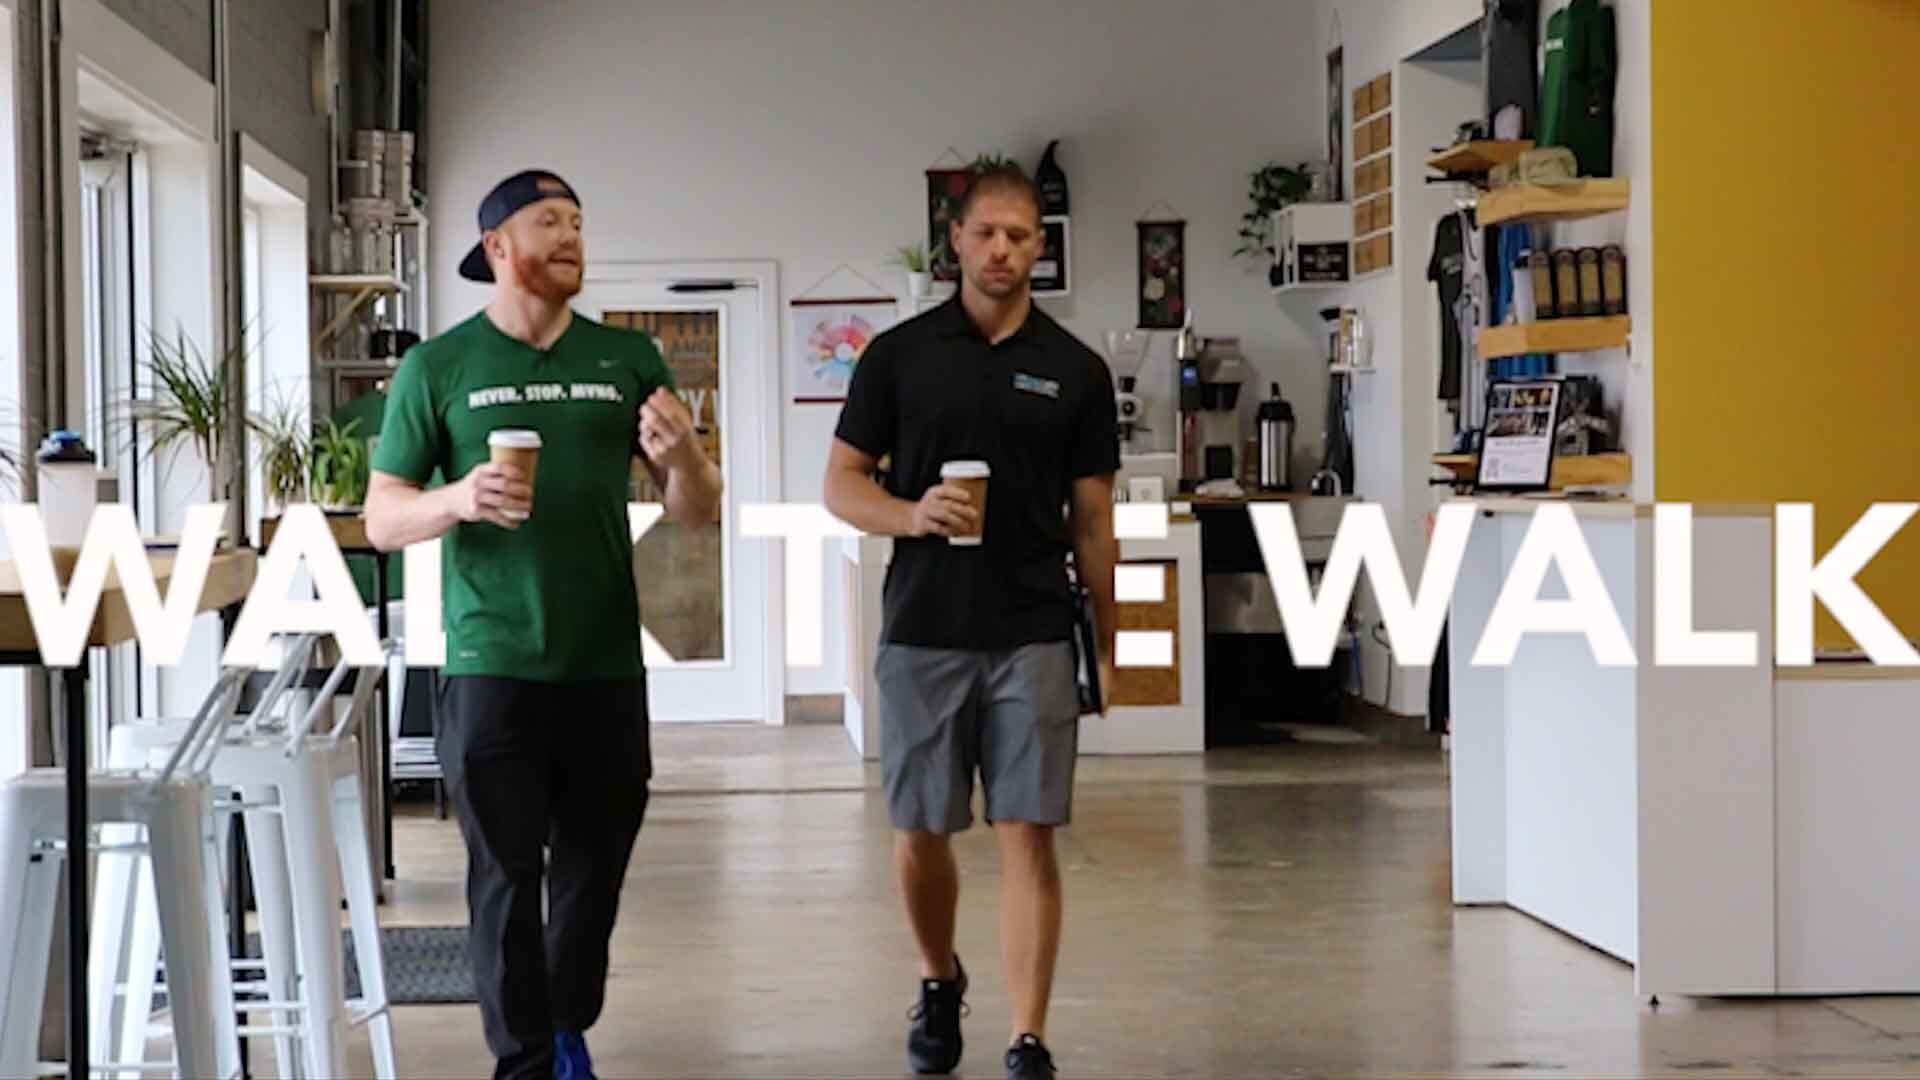 WTF Gym Talk | Walk the Walk w/ CrossFit Northport - Day 2